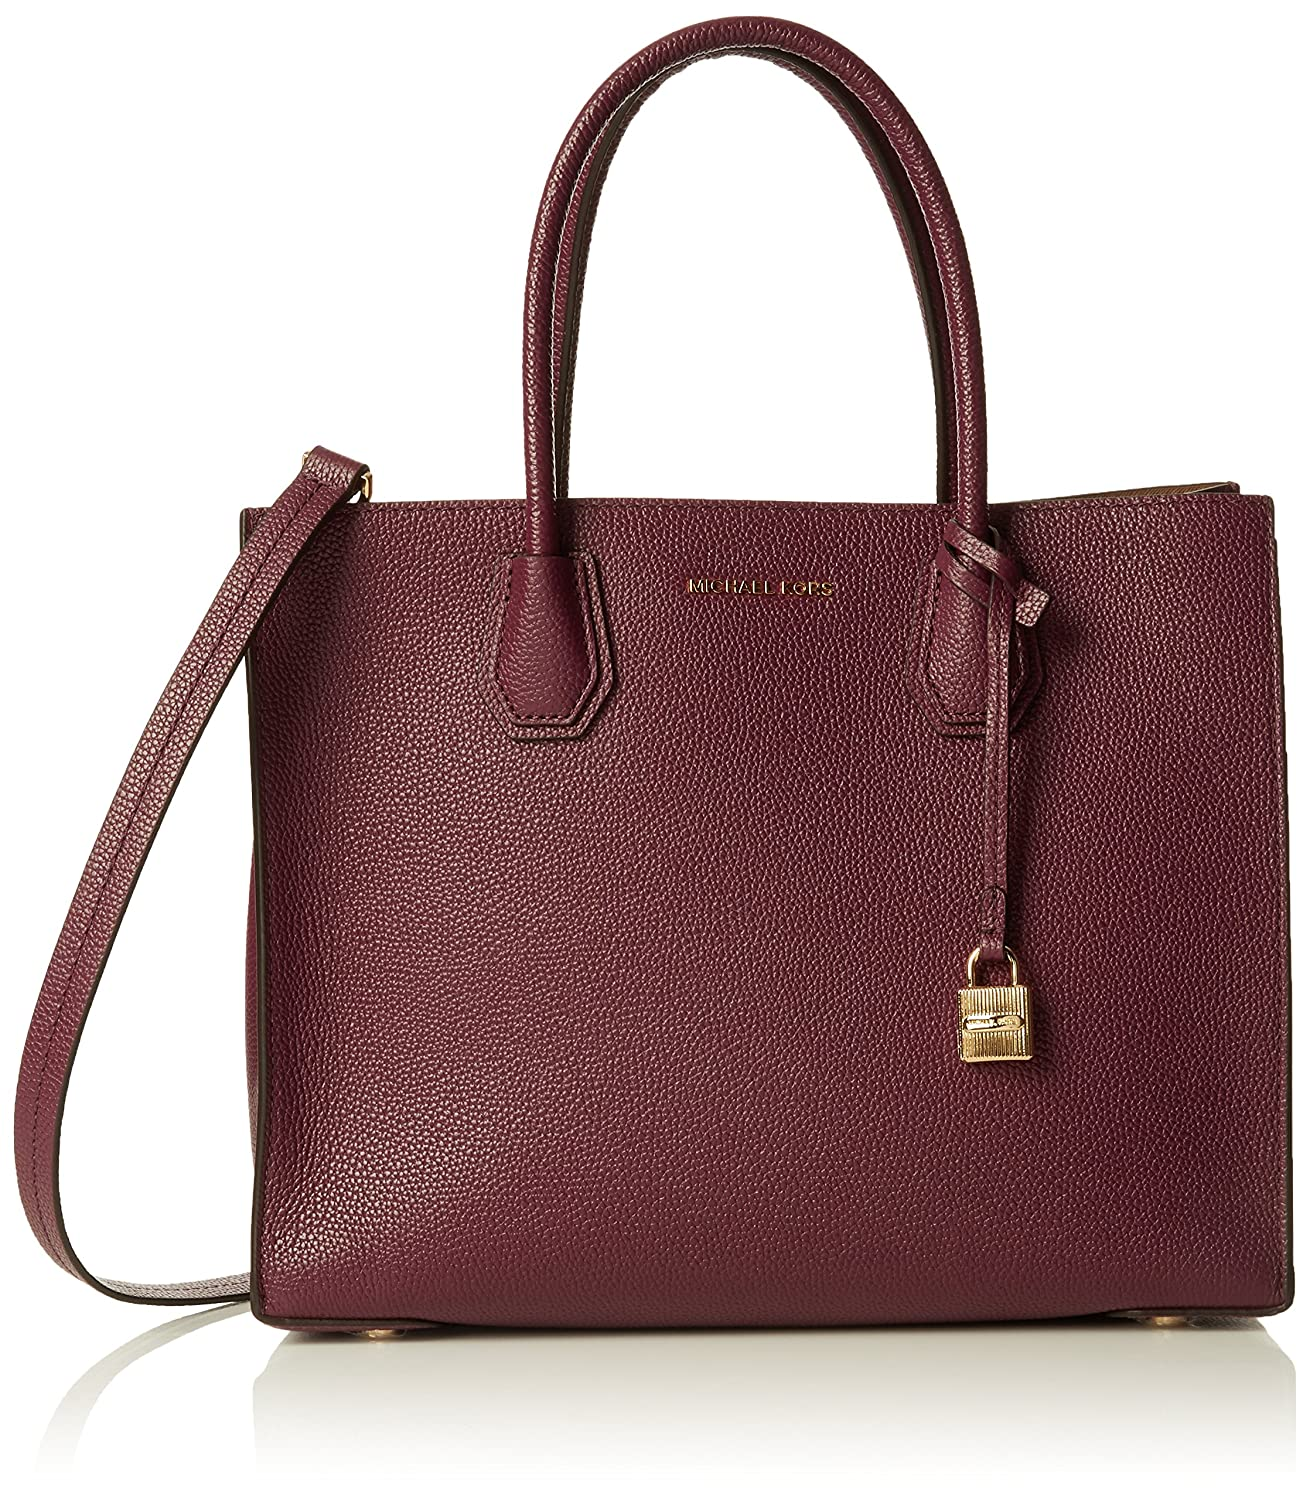 7b7e195cf6a47 Amazon.com: MICHAEL MICHAEL KORS Mercer Large Bonded-Leather Tote (Plum):  Shoes